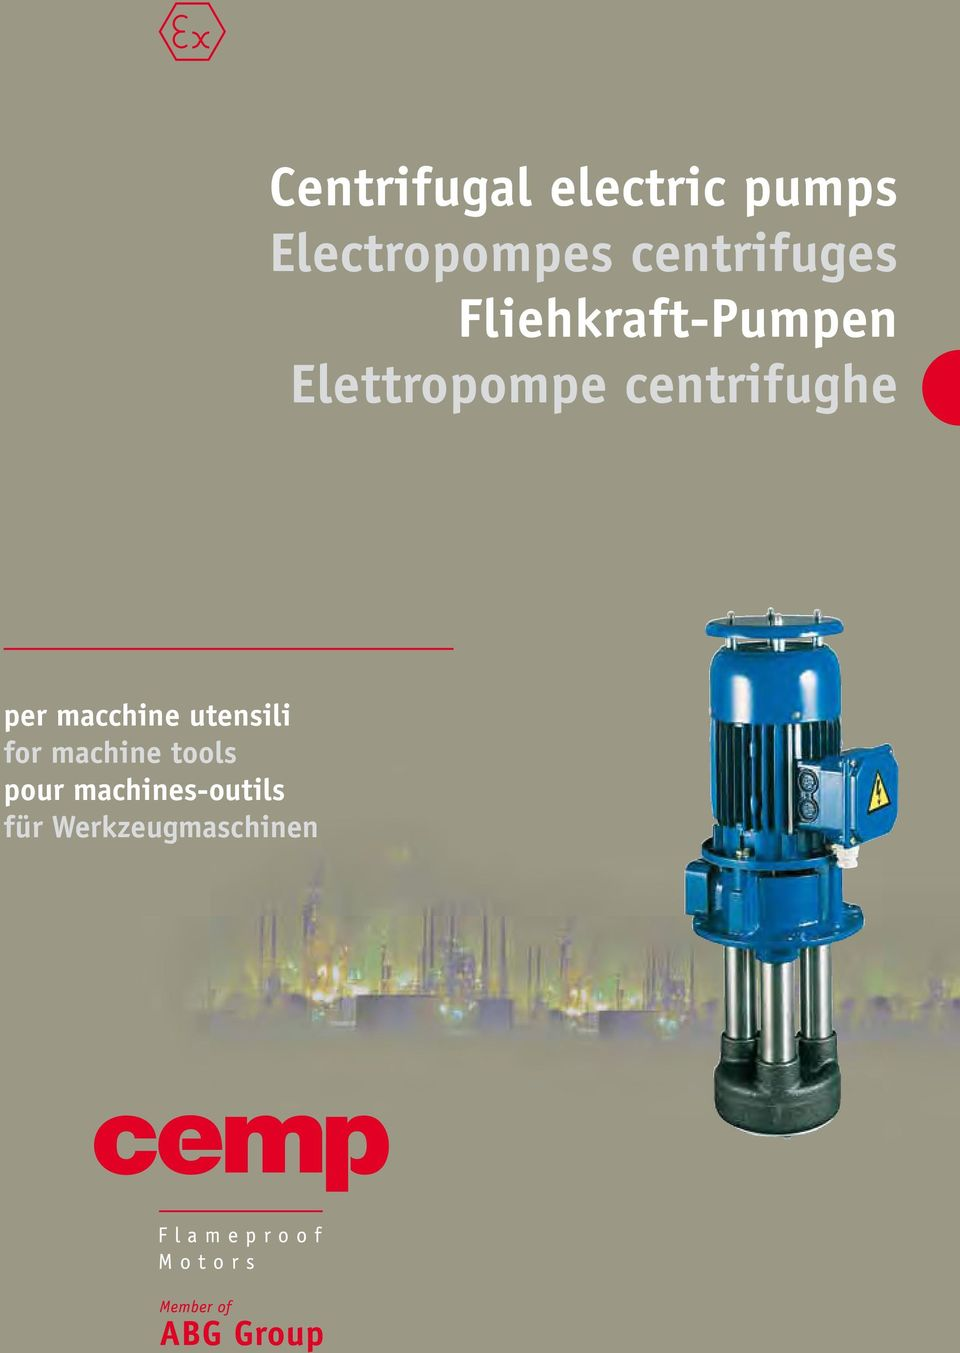 Centrifugal electric pumps Electropompes